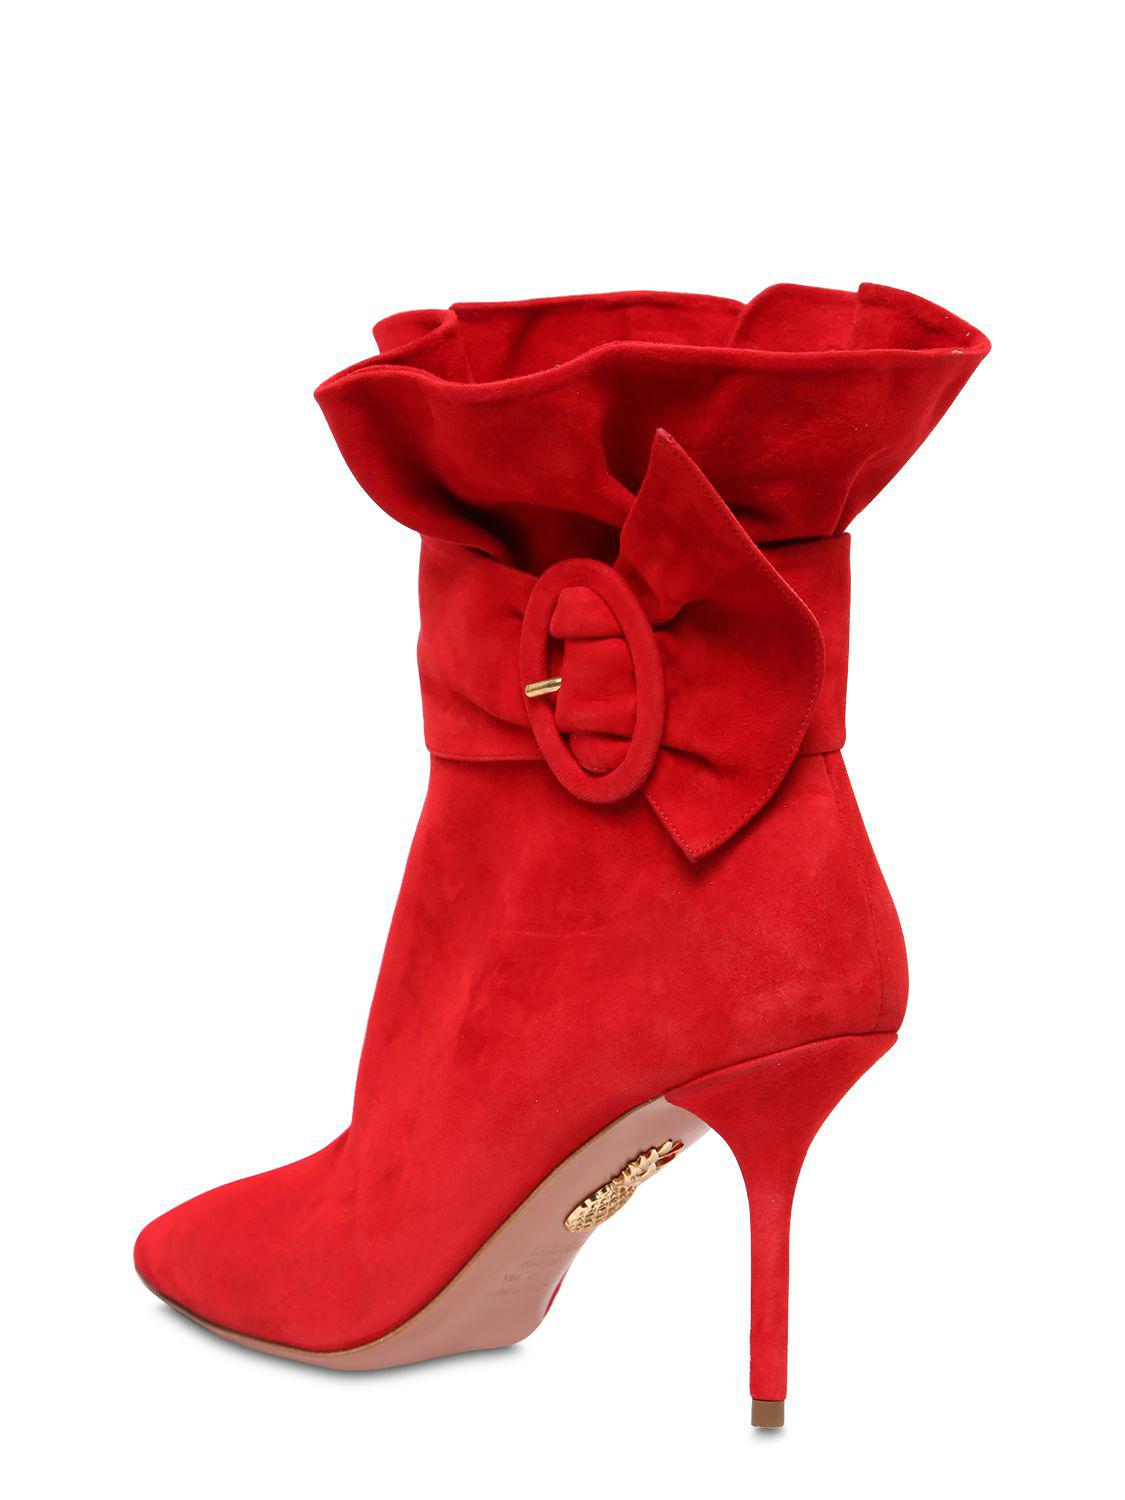 Aquazzura 85MM PALACE RUFFLED SUEDE ANKLE BOOTS 79lZn7TU